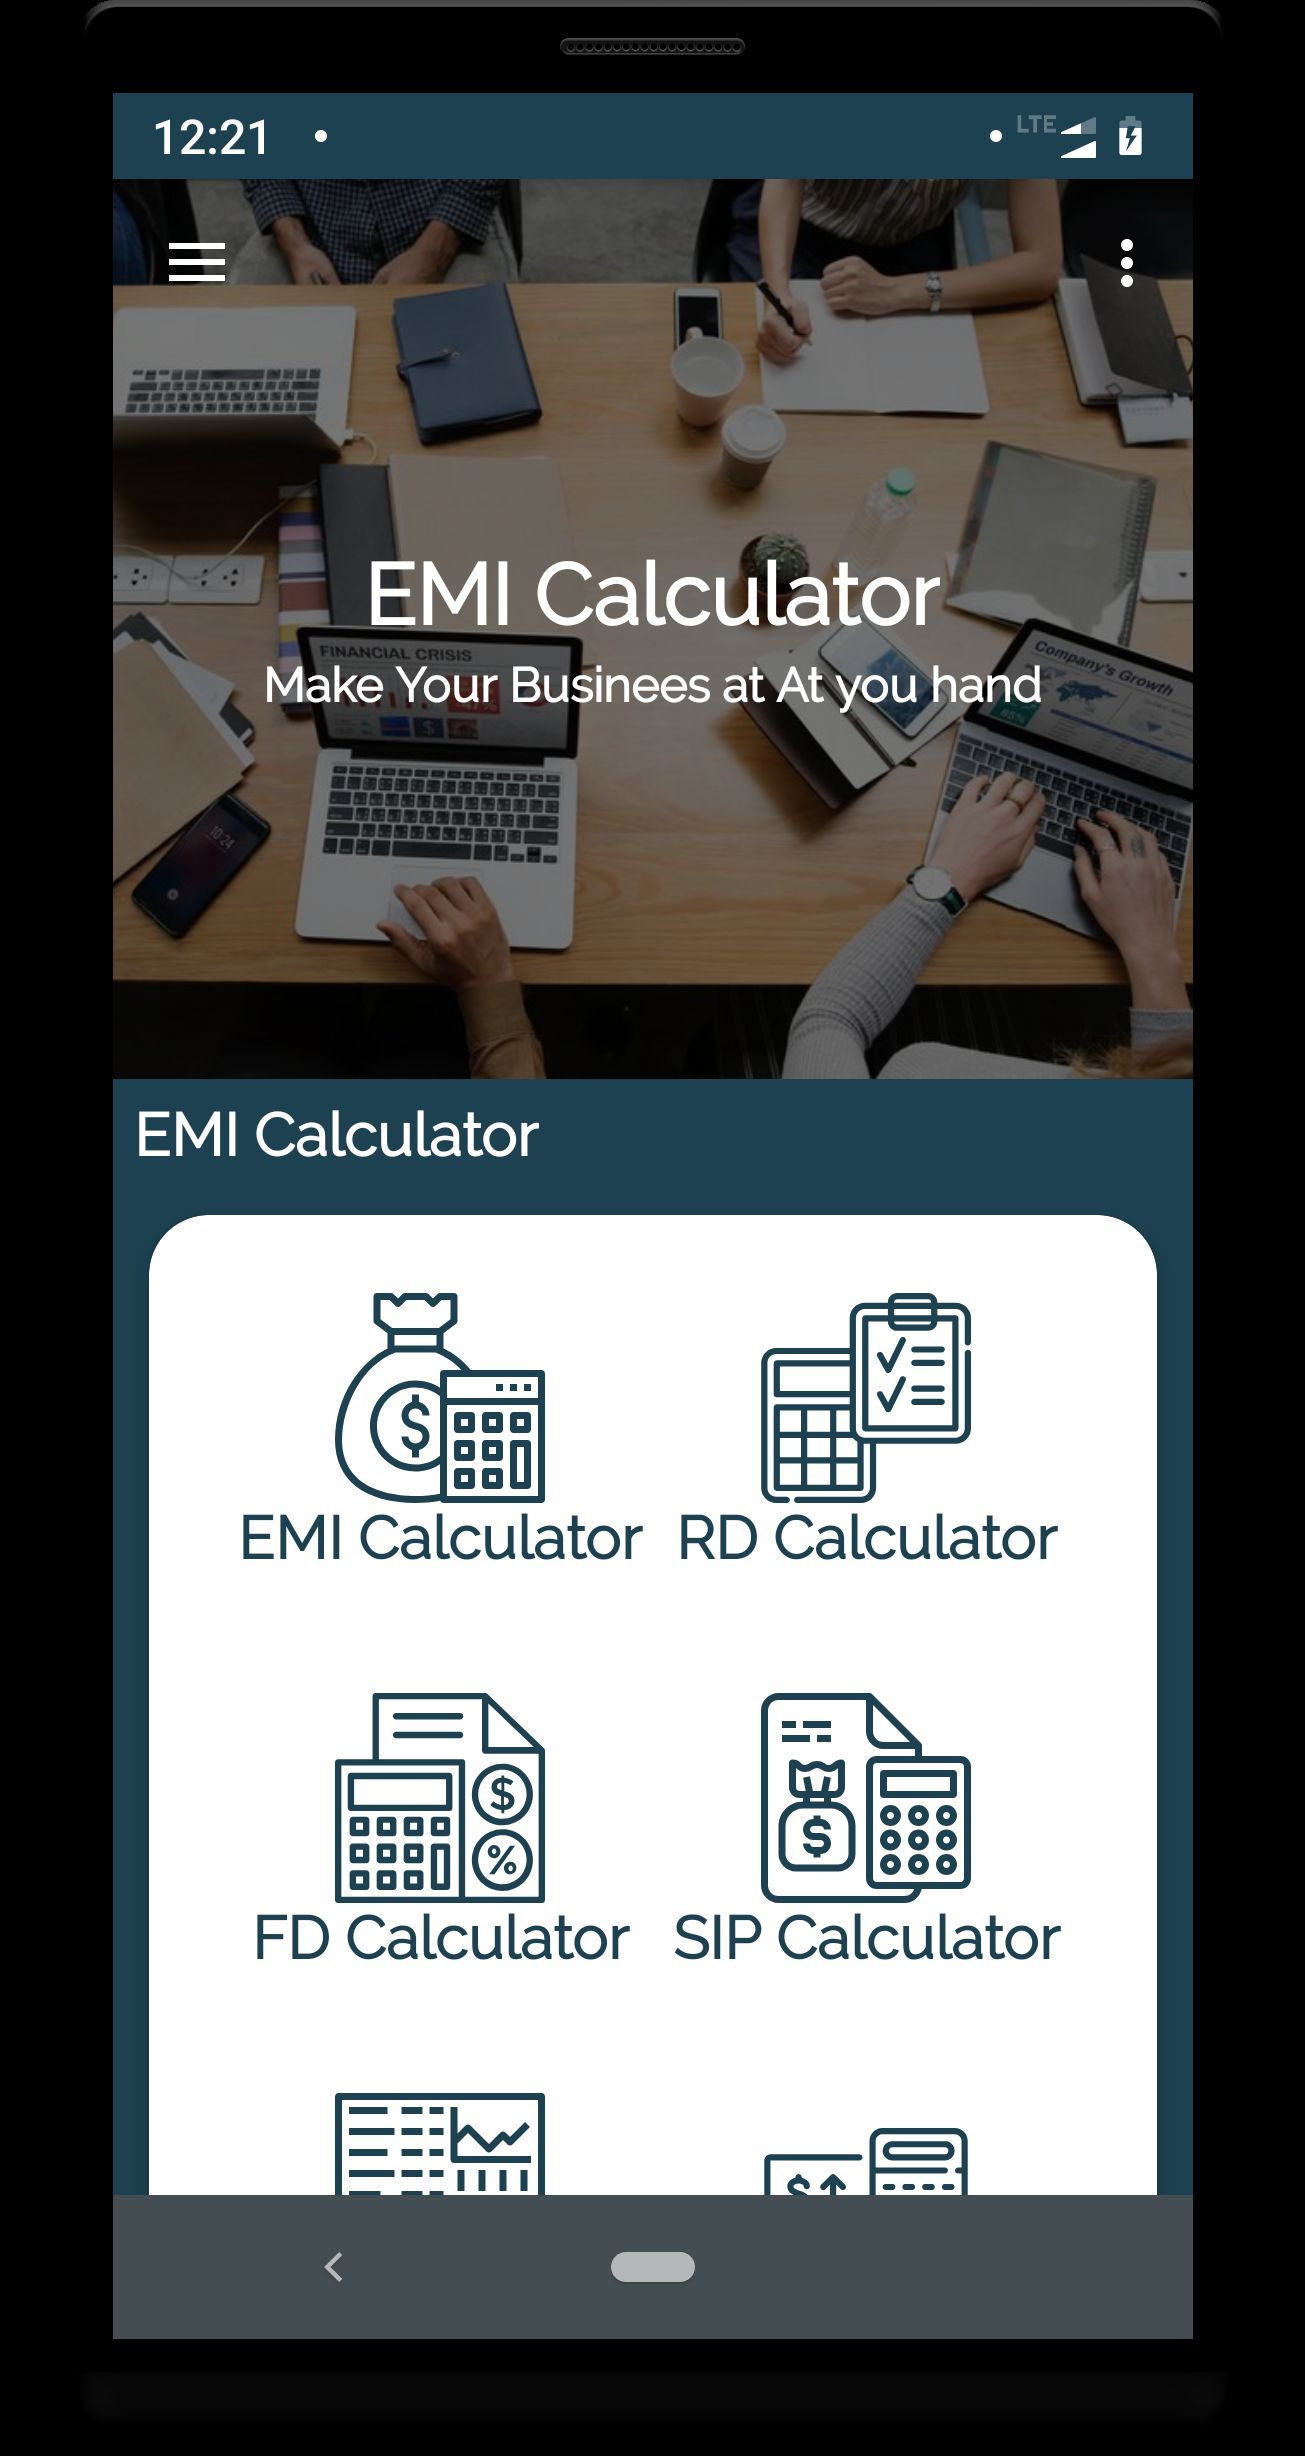 Emi Calculator - Android App Source Code Screenshot 3